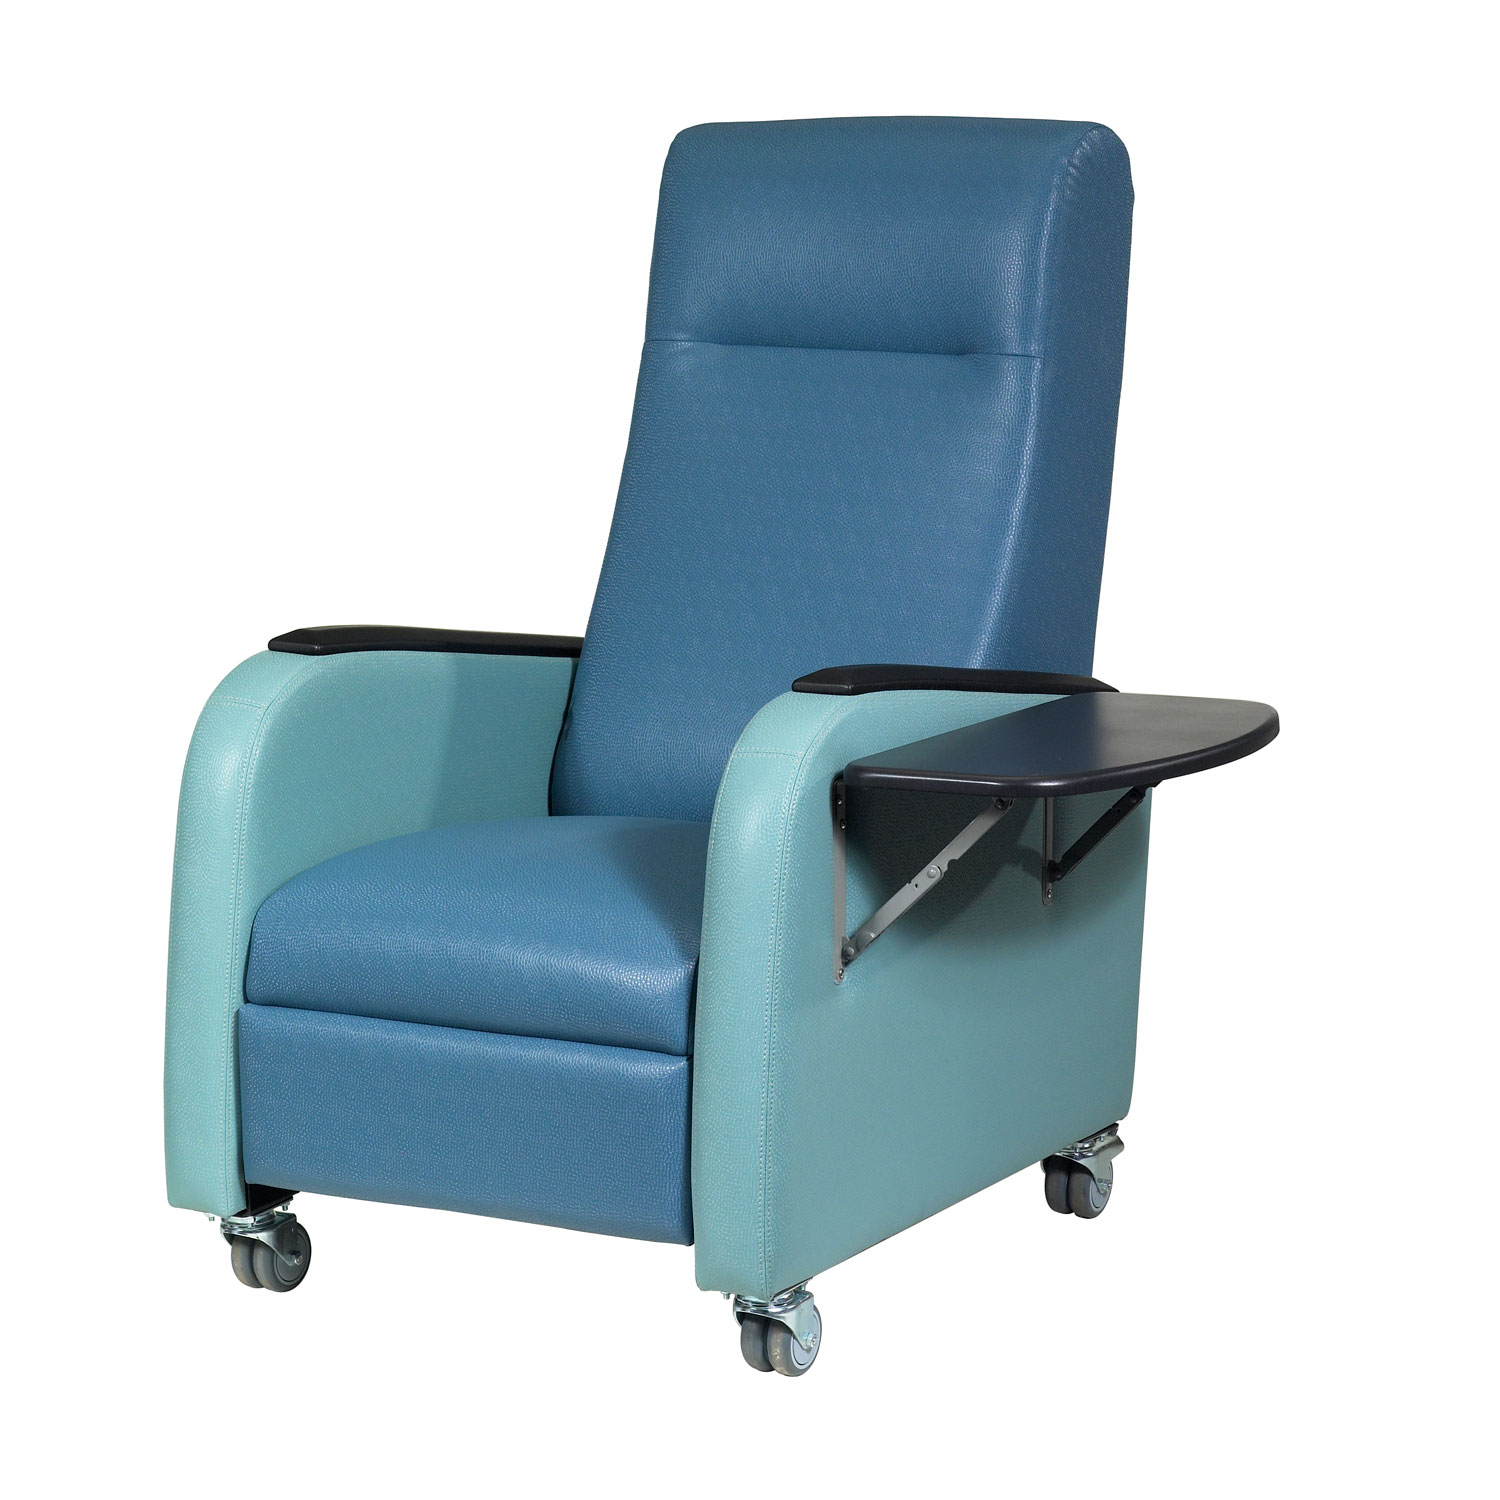 healthcare_recliners_haley_outlined_recliners_Opposite_web.jpg. healthcare_recliners_haley_outlined_Tablet_Arm_web.jpg  sc 1 st  HPFi & Haley healthcare recliners from HPFi - High Point Furniture Industries islam-shia.org